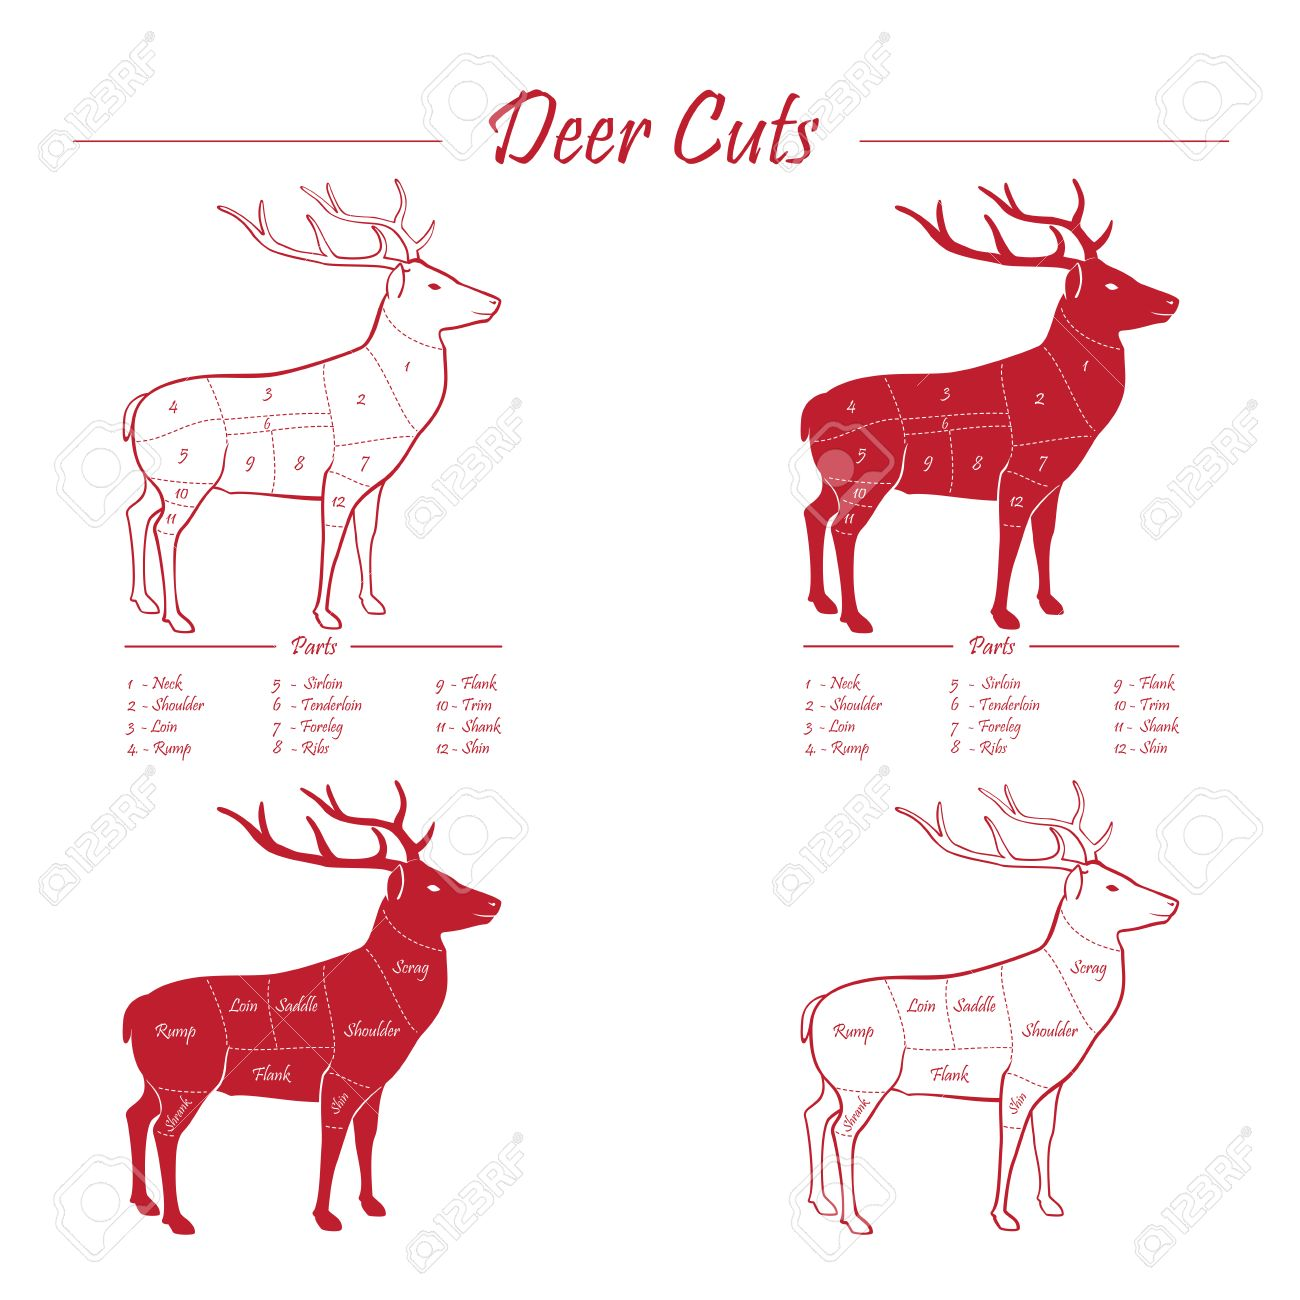 Swell Deer Venison Meat Cut Diagram Scheme Elements Set Red On Wiring Digital Resources Hetepmognl